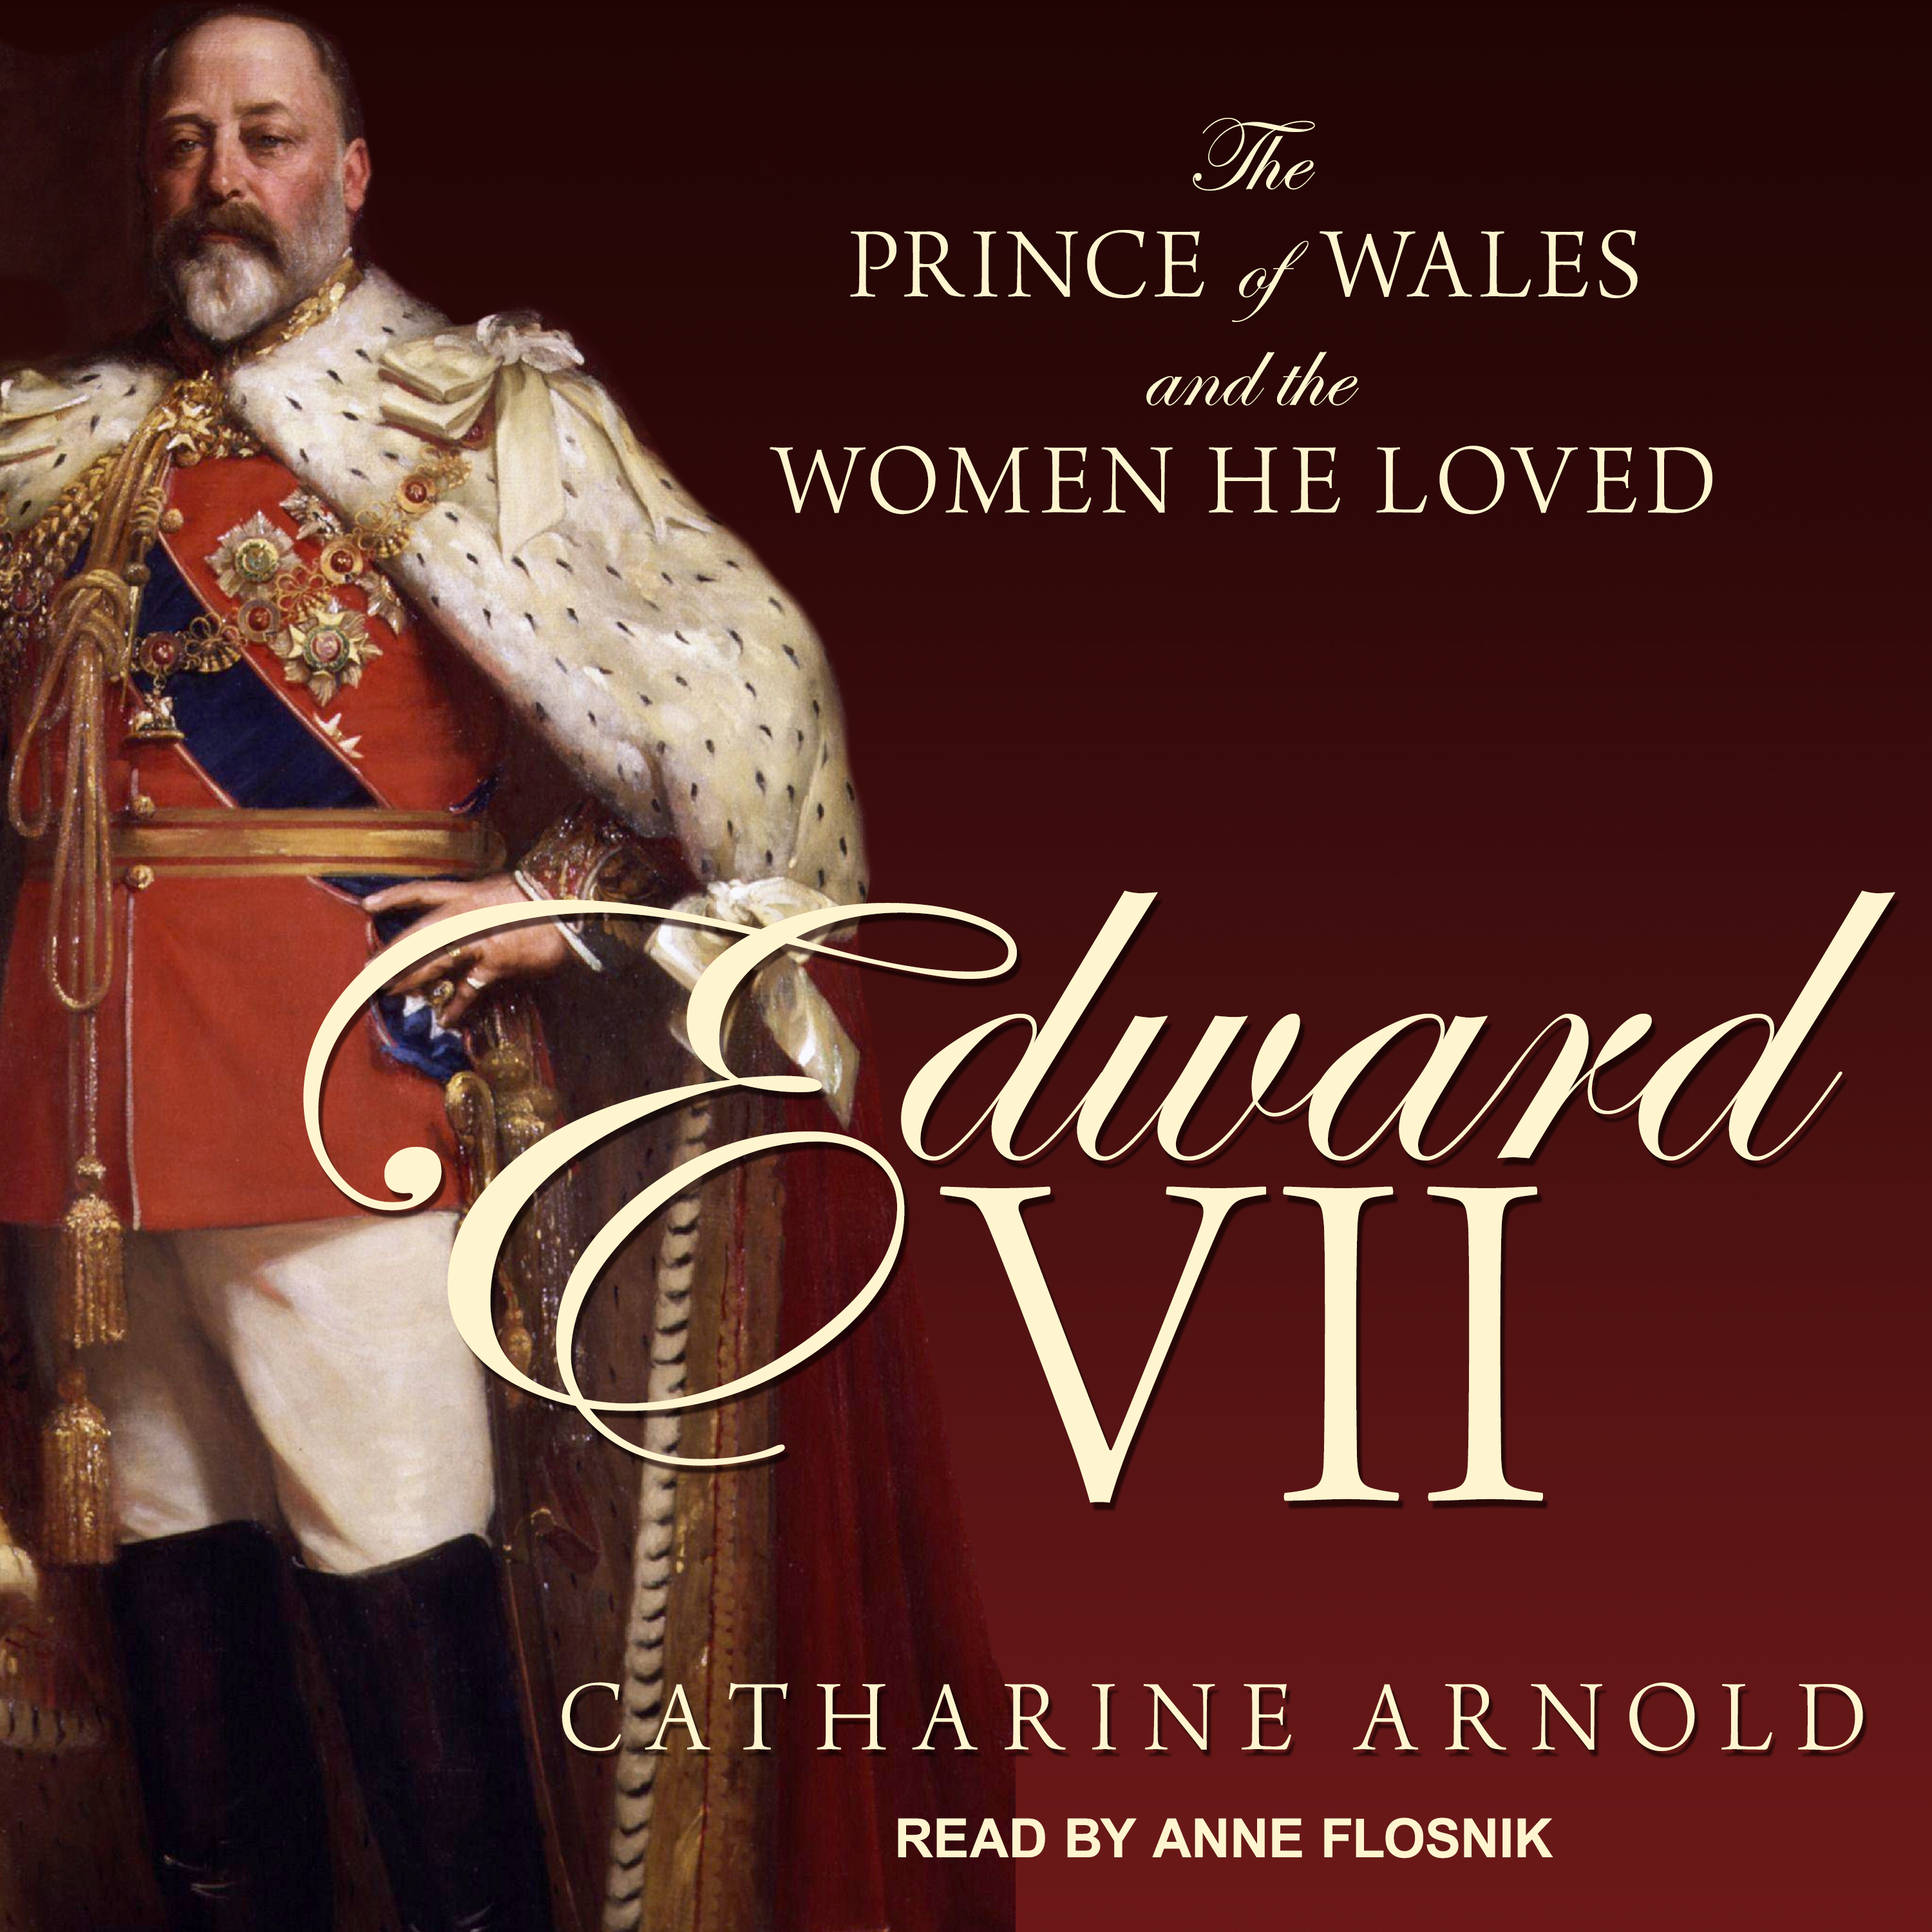 Printable Edward VII: The Prince of Wales and the Women He Loved Audiobook Cover Art